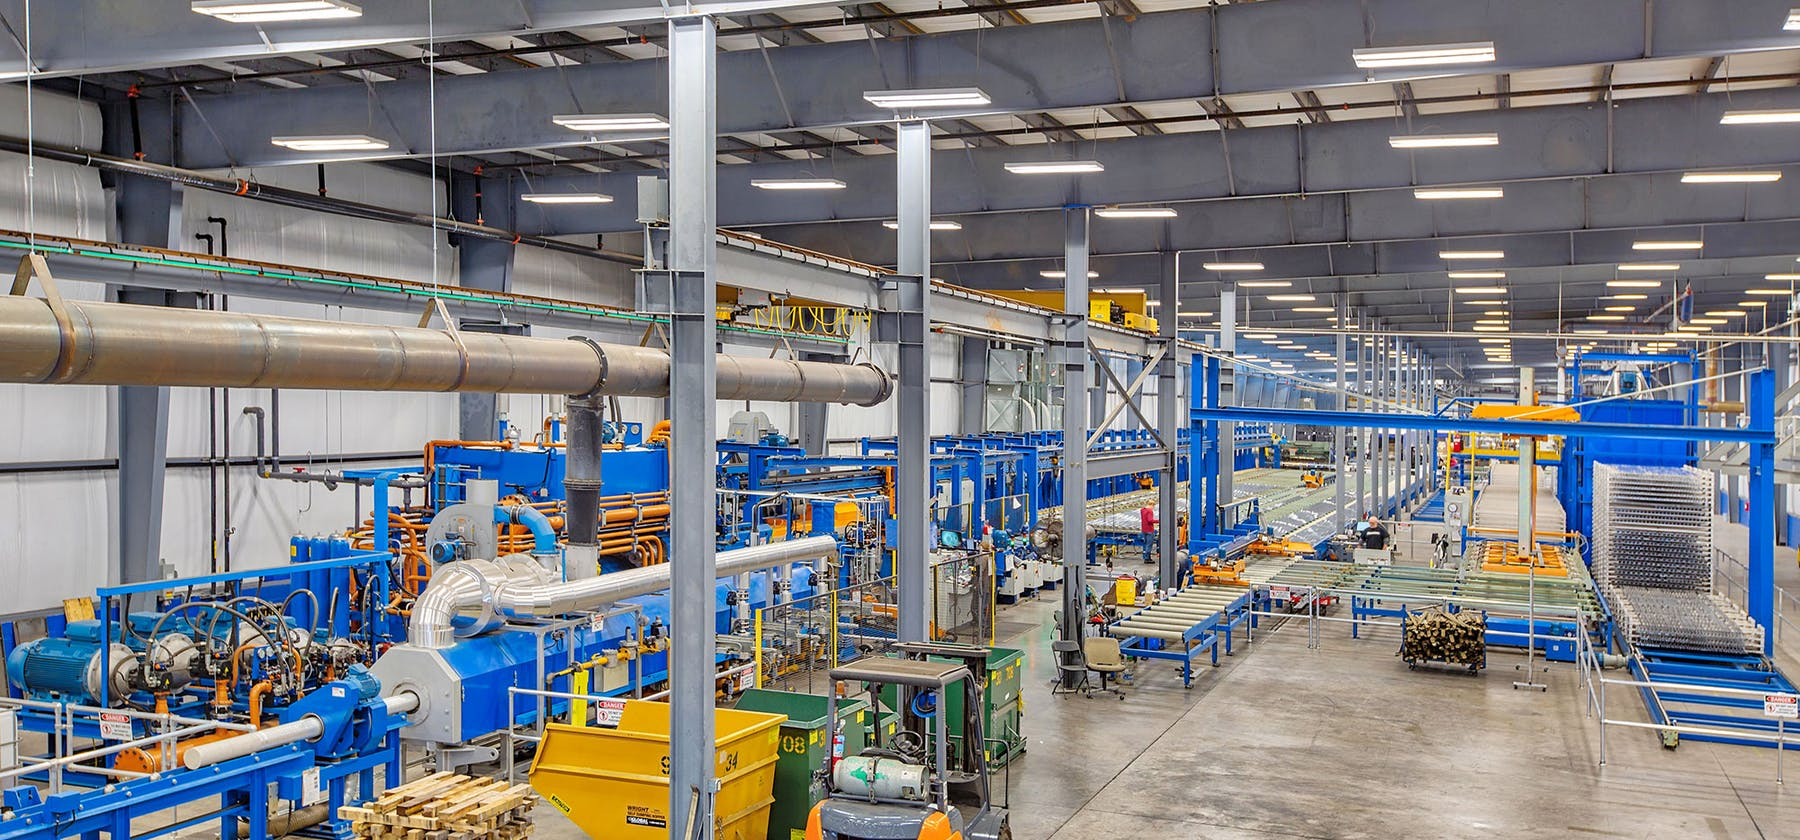 SEI building interior with machinery and forklift